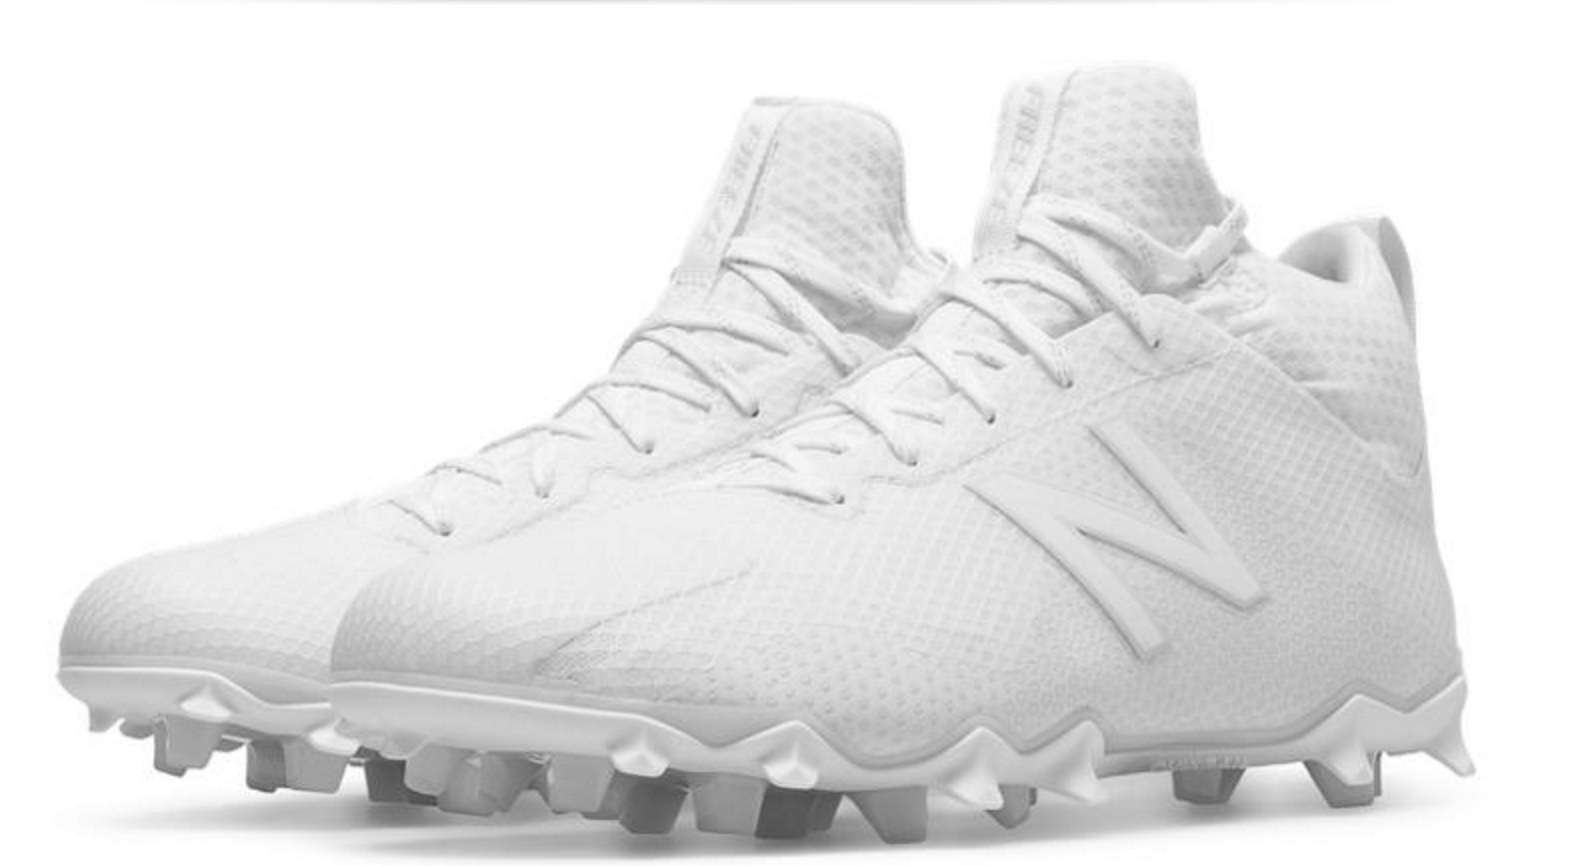 nike freeze lacrosse cleat review